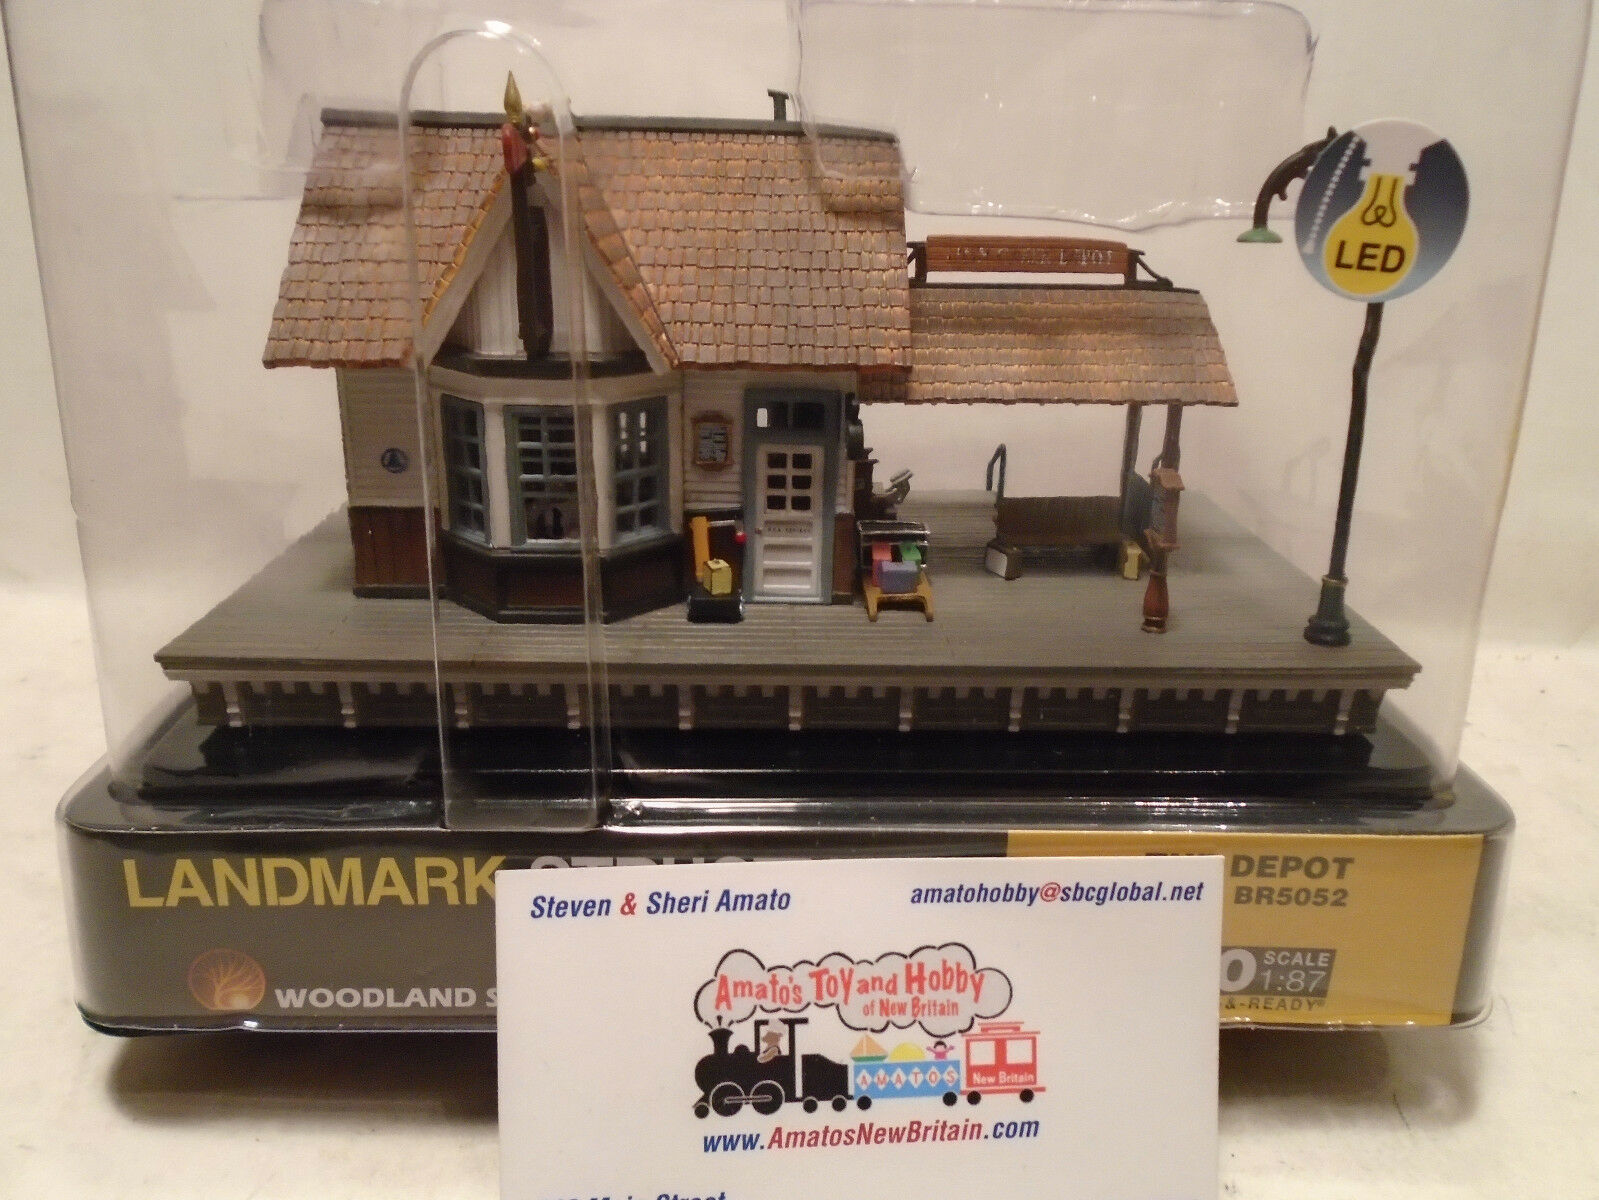 Woodland Scenics BR5052 HO Scale The Depot Built & Ready LED Lighting BUILDING